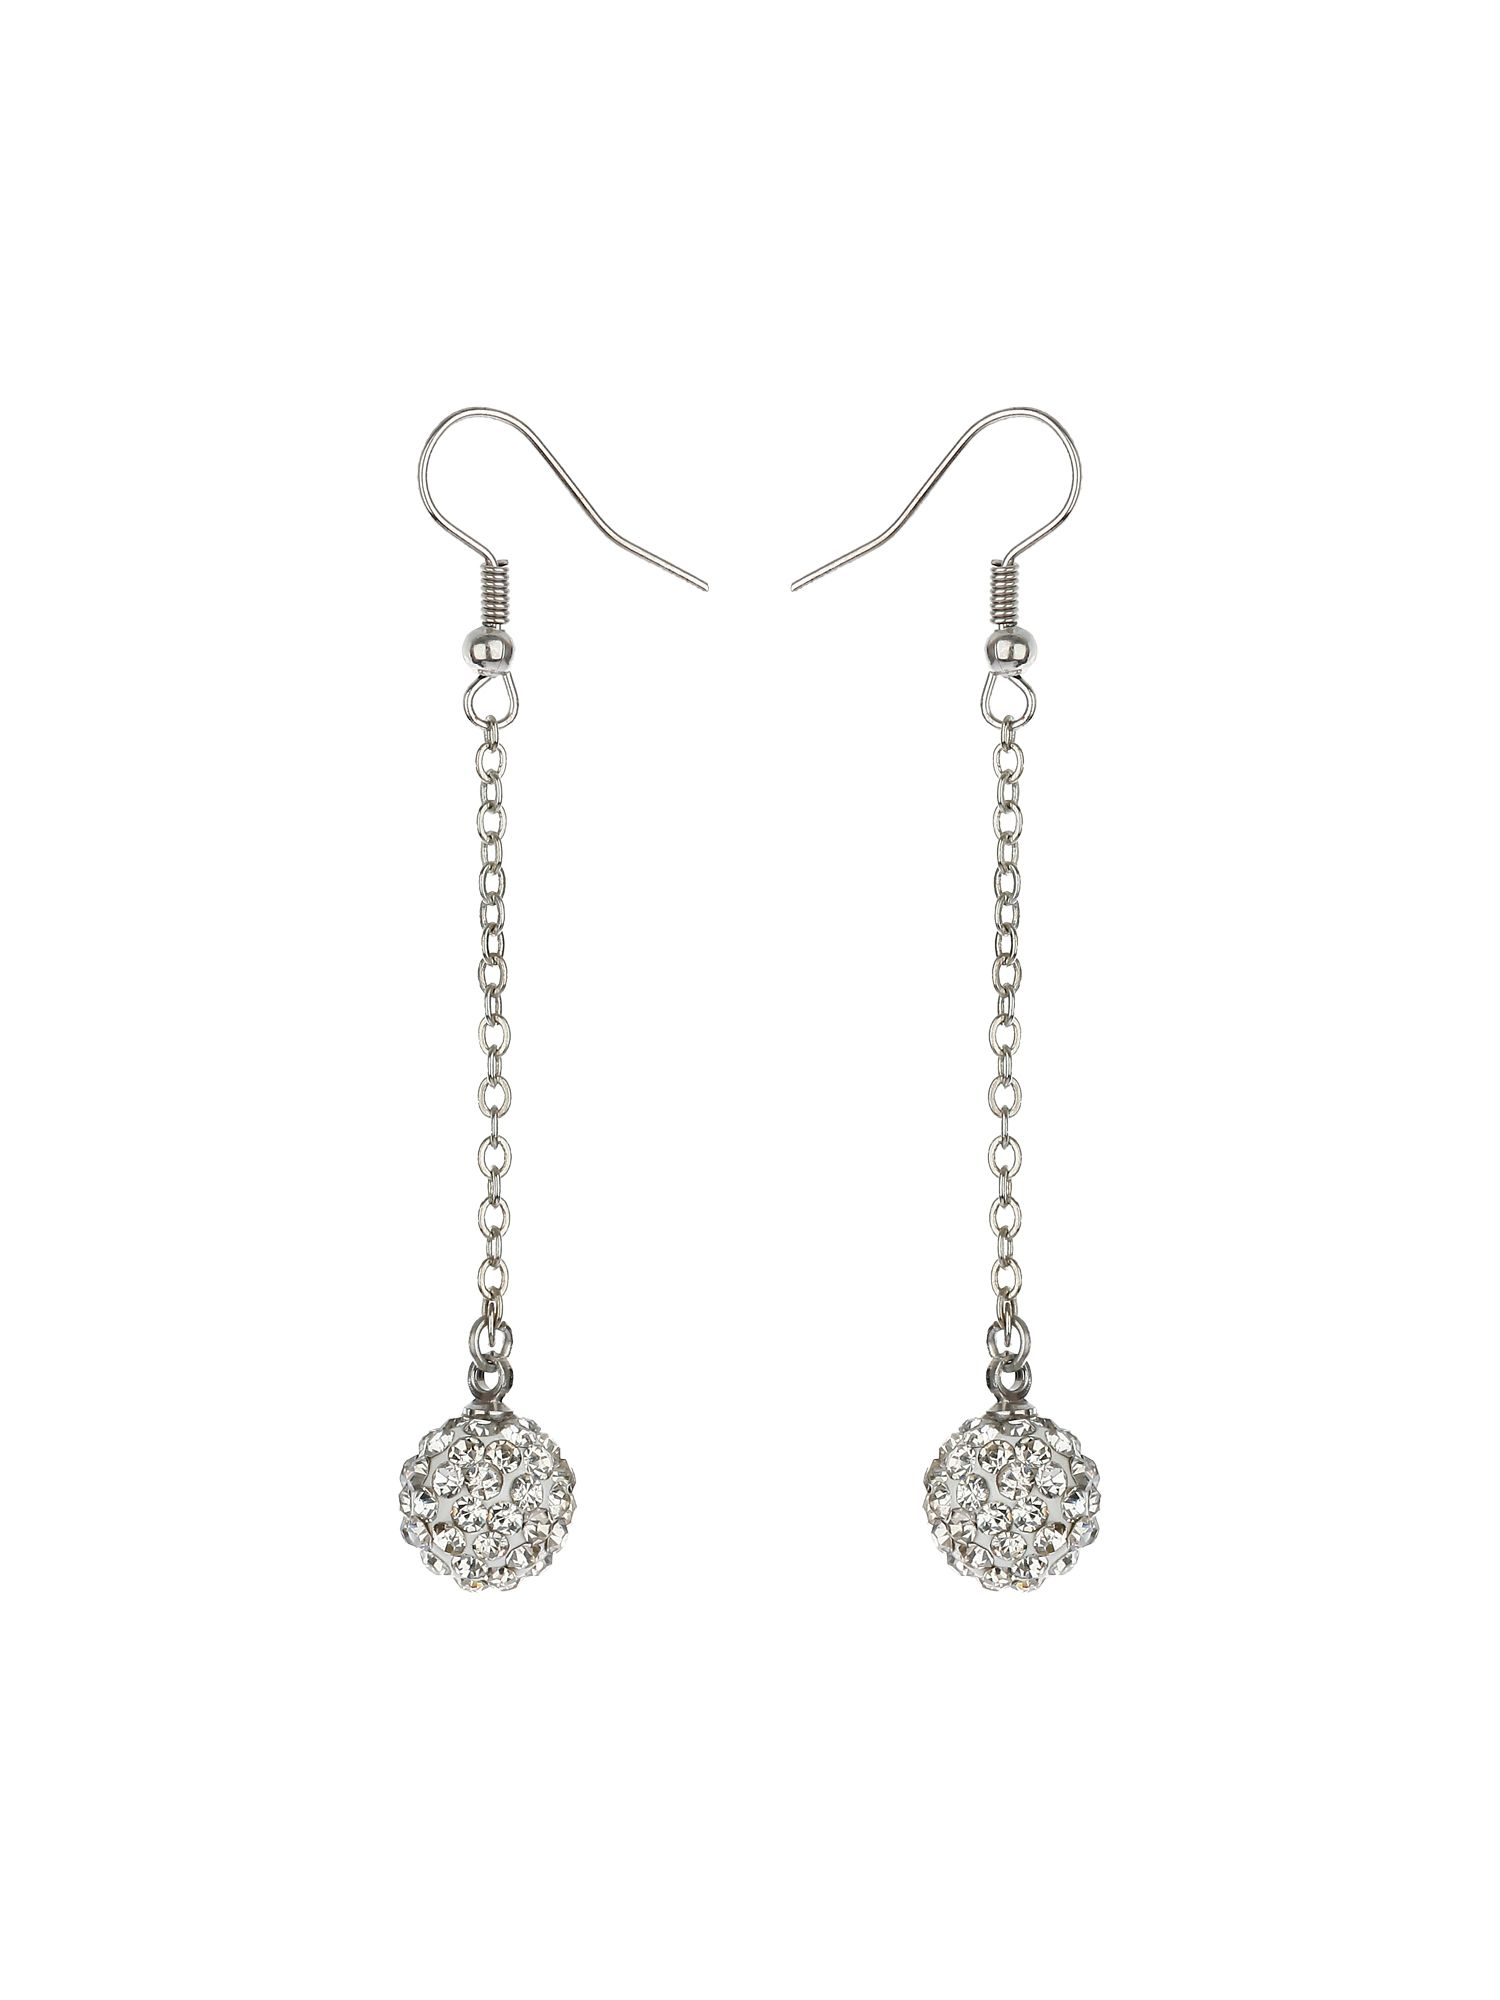 10mm crystal drop earringss